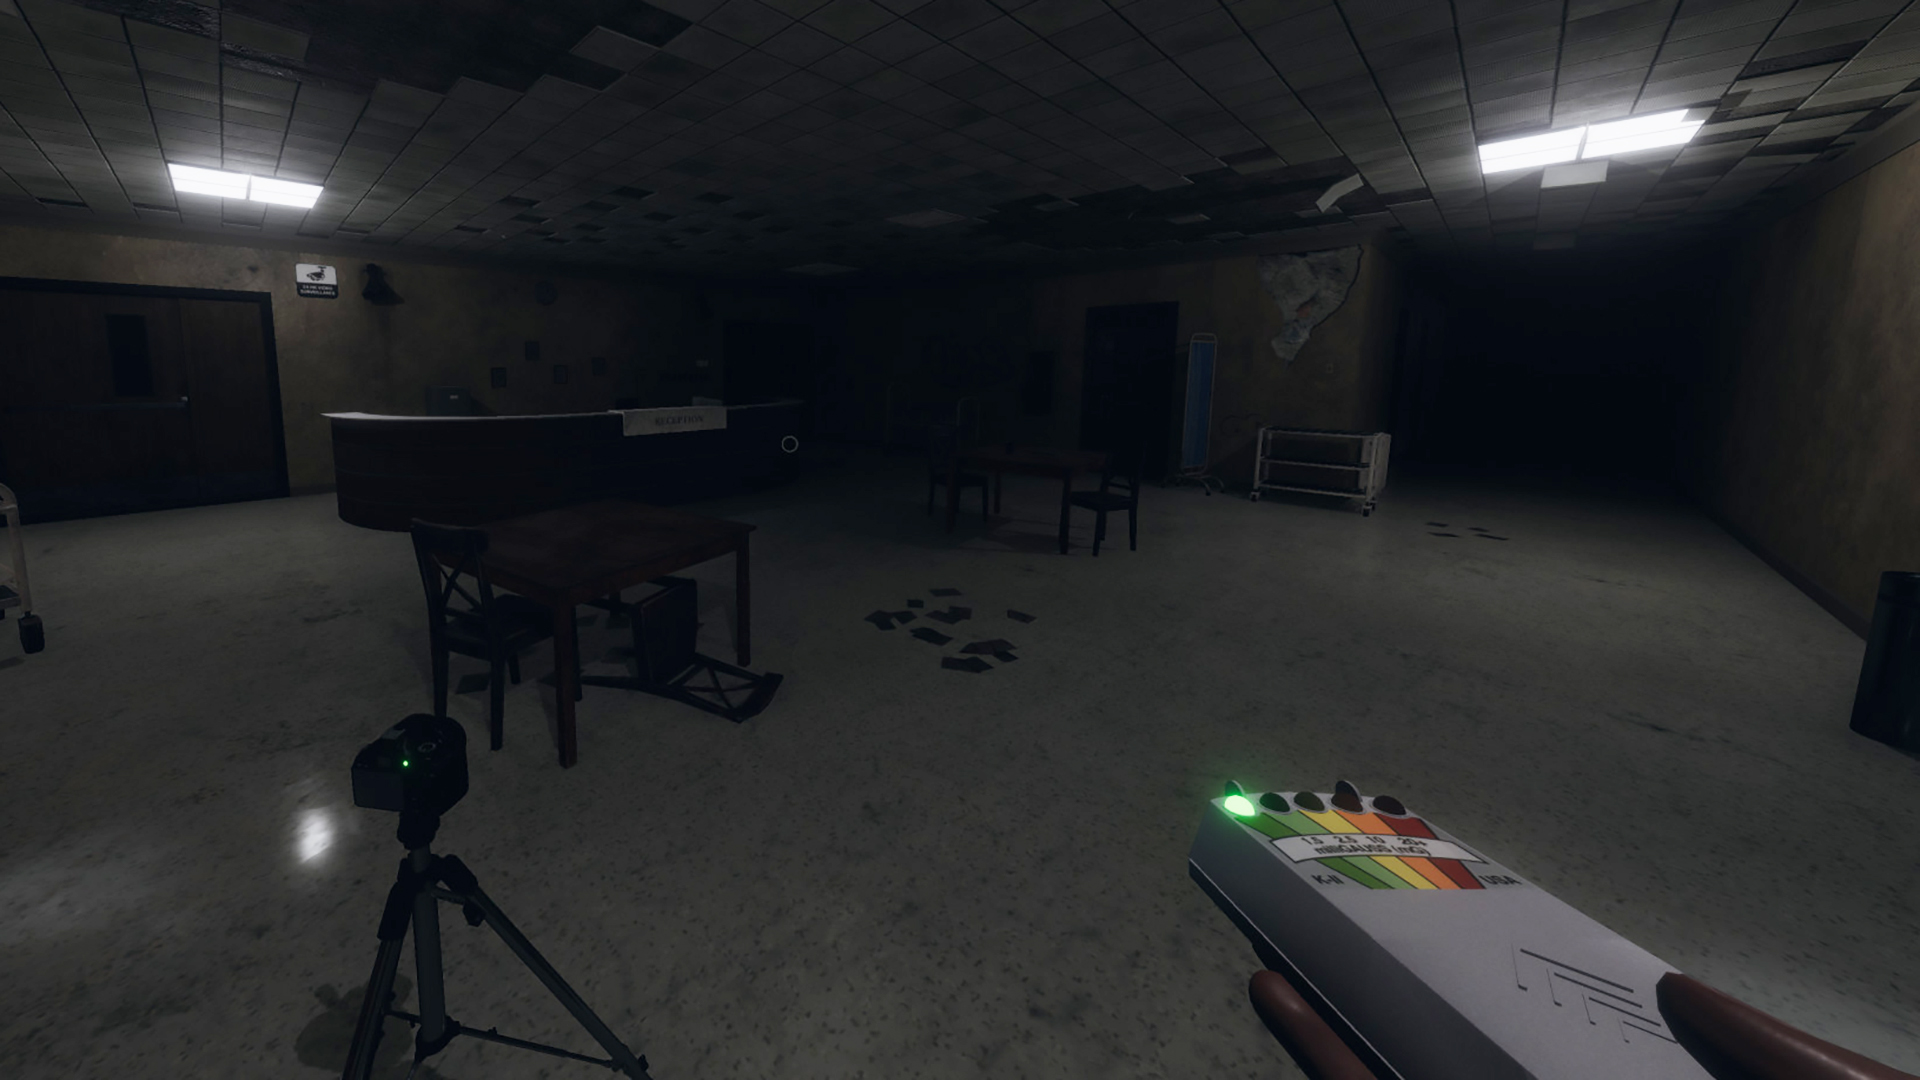 Phasmophobia, a terrifying online co-op ghost hunting game, is Twitch's latest surprise hit